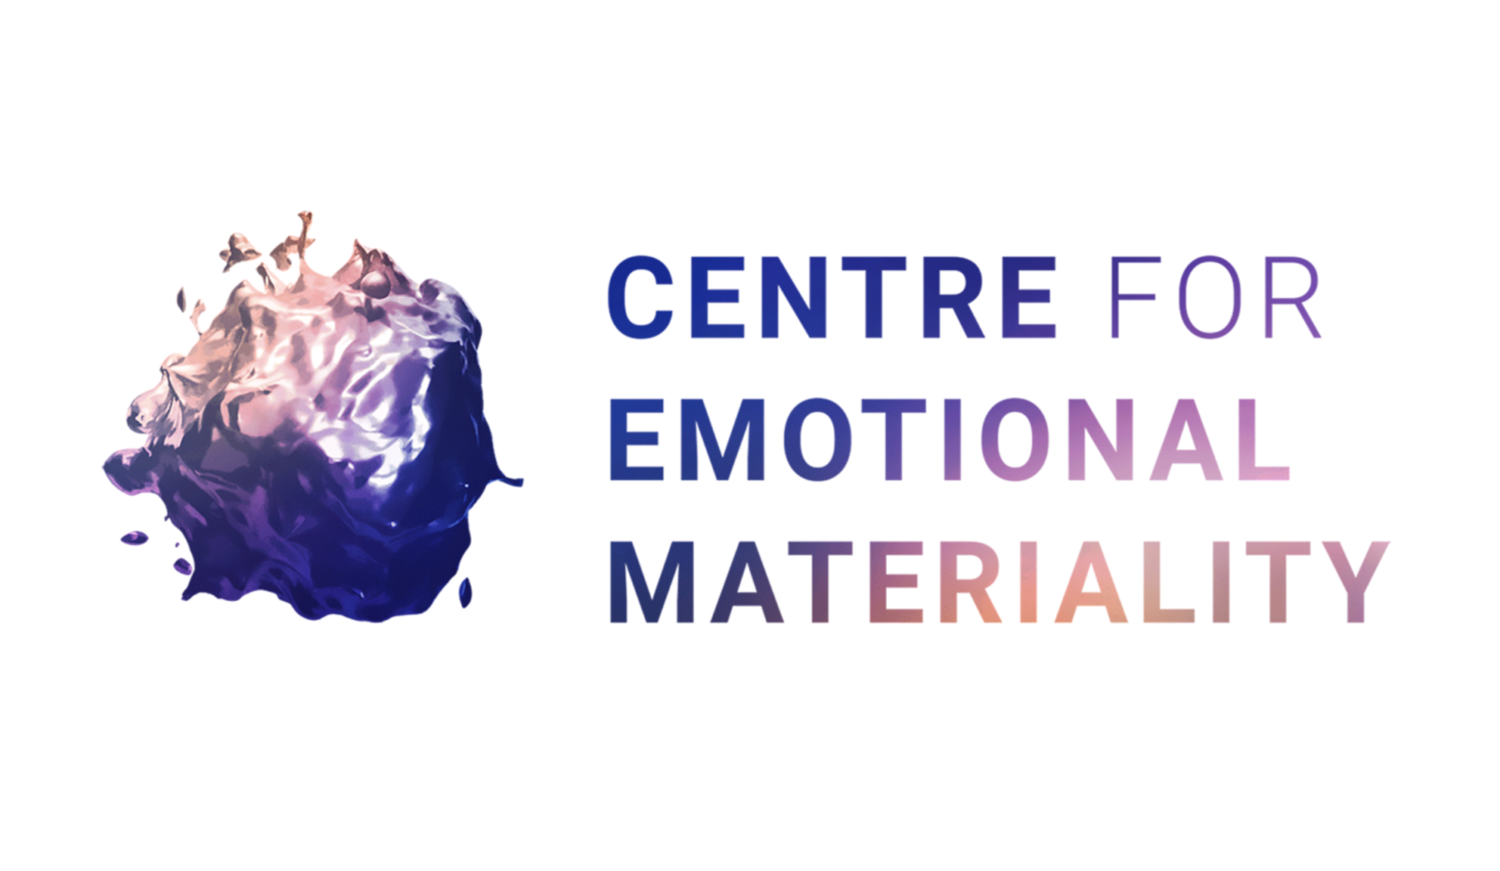 Centre for Emotional Materiality